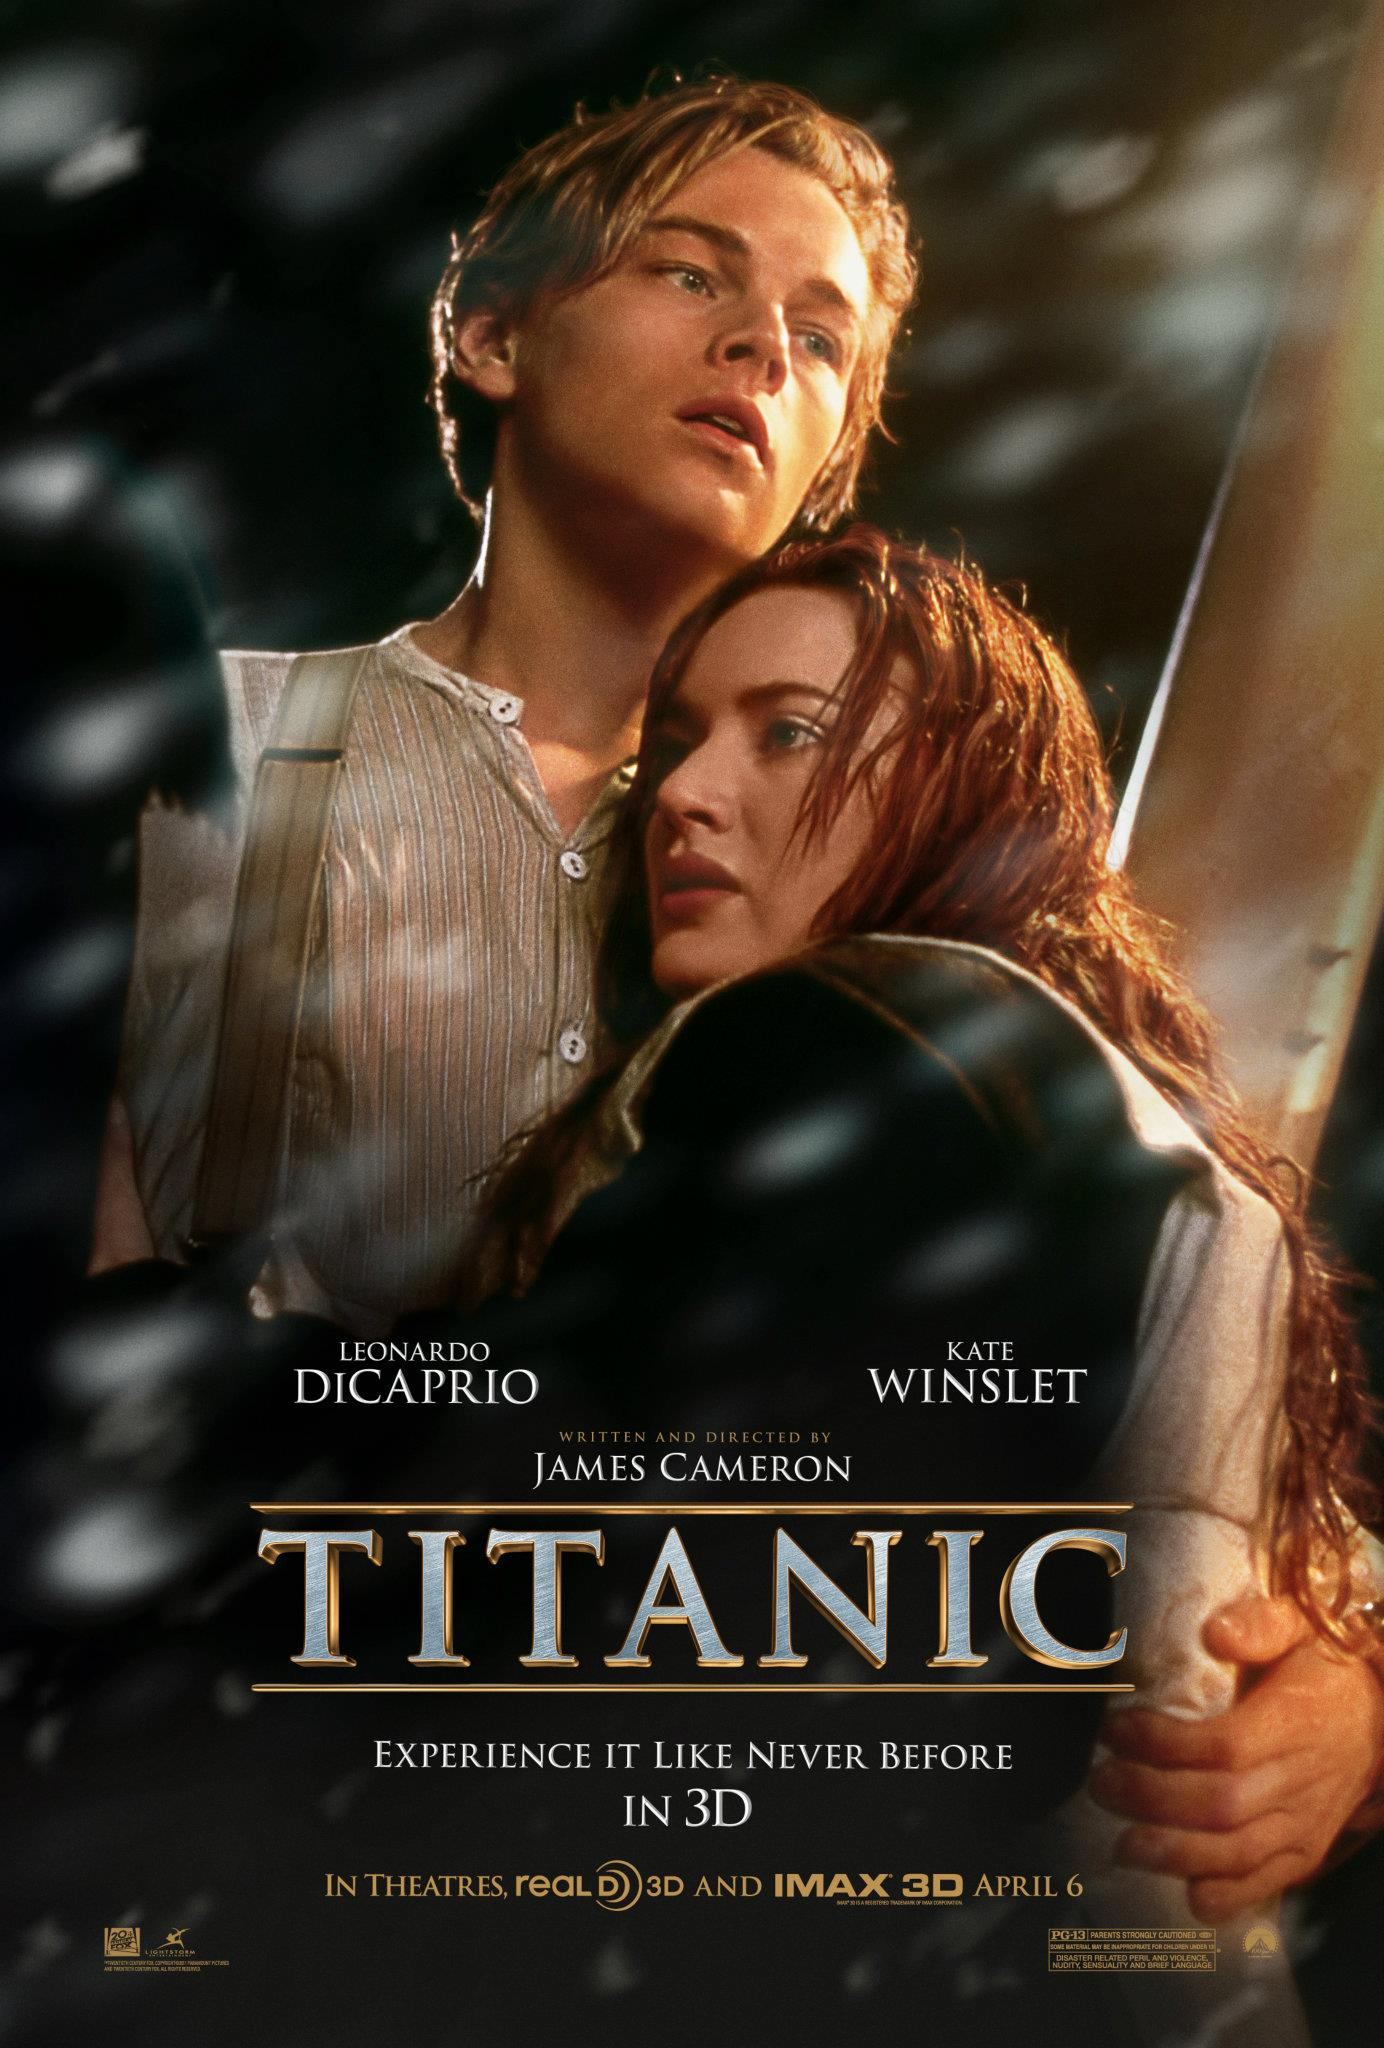 [Multi] TITANIC 1997 3D [FRENCH] [Bluray 3D 1080P]